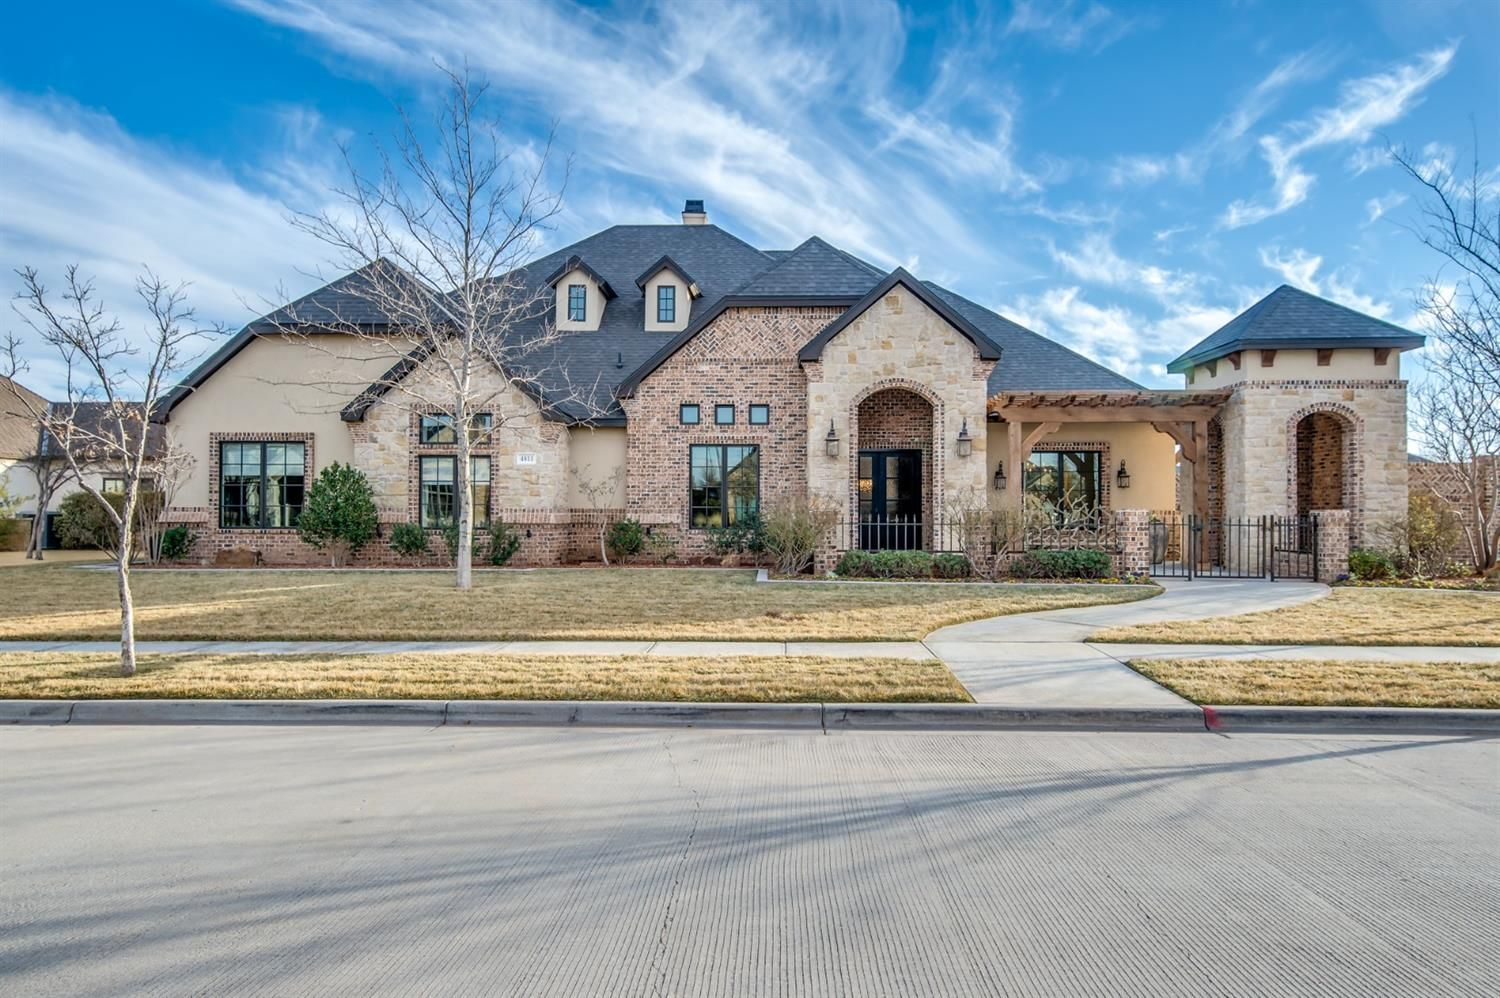 4811 115th lubbock is a magnificent estate and was in the